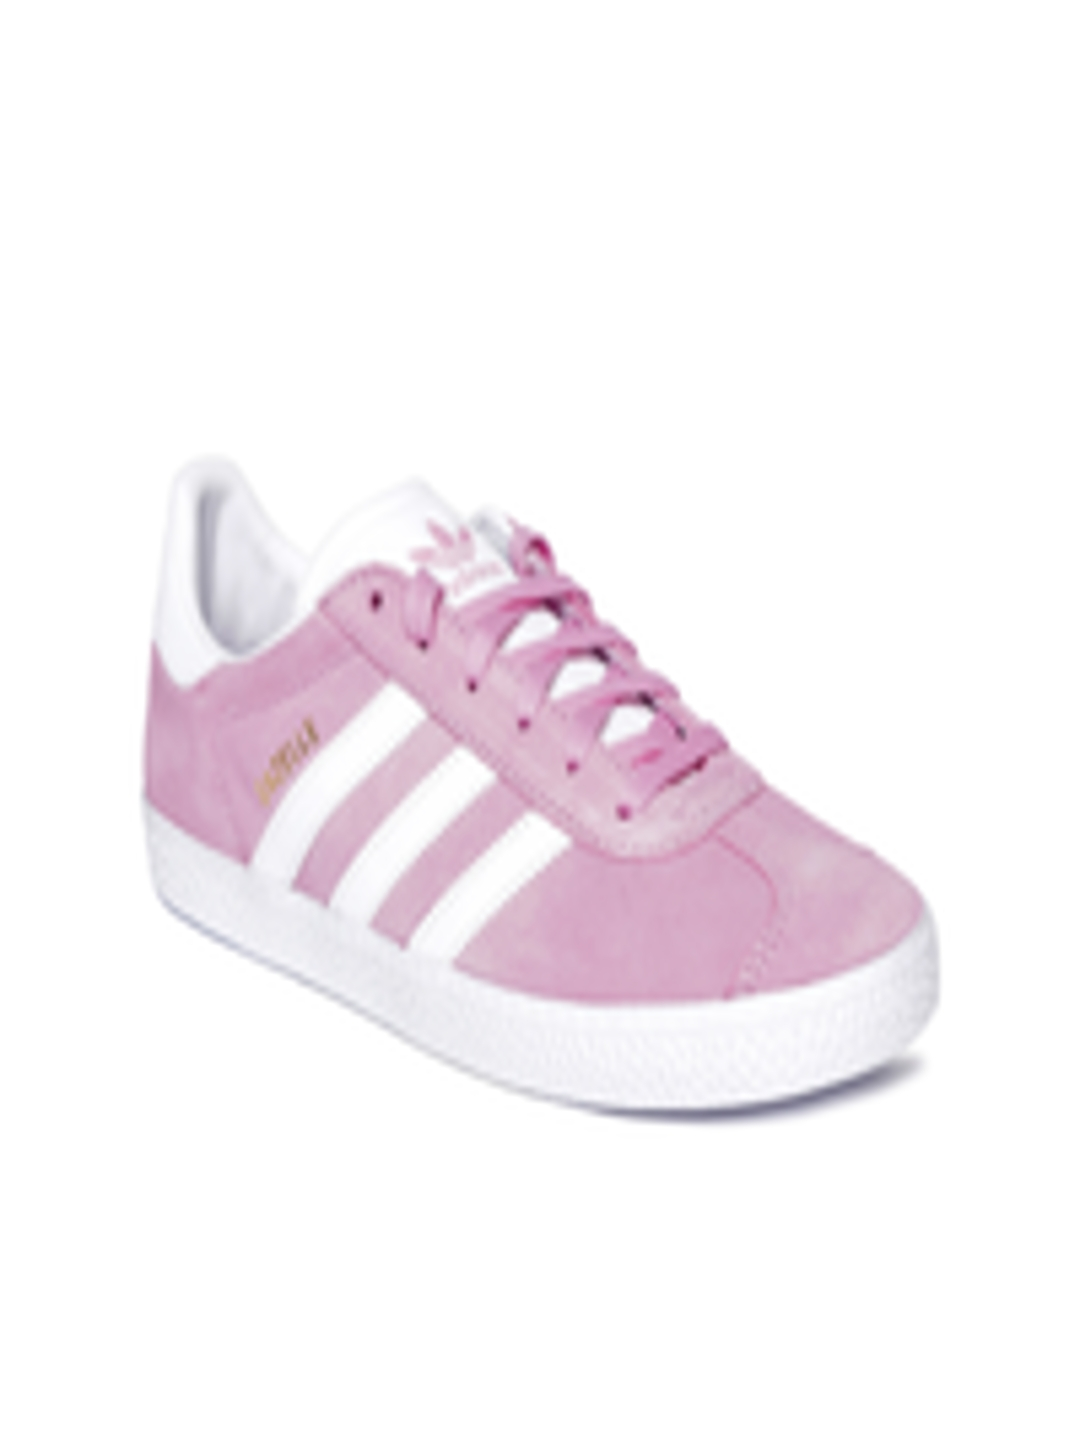 d3f9da1832 Buy ADIDAS Originals Kids Pink Gazelle Suede Sneakers - Casual Shoes for  Unisex 6842565